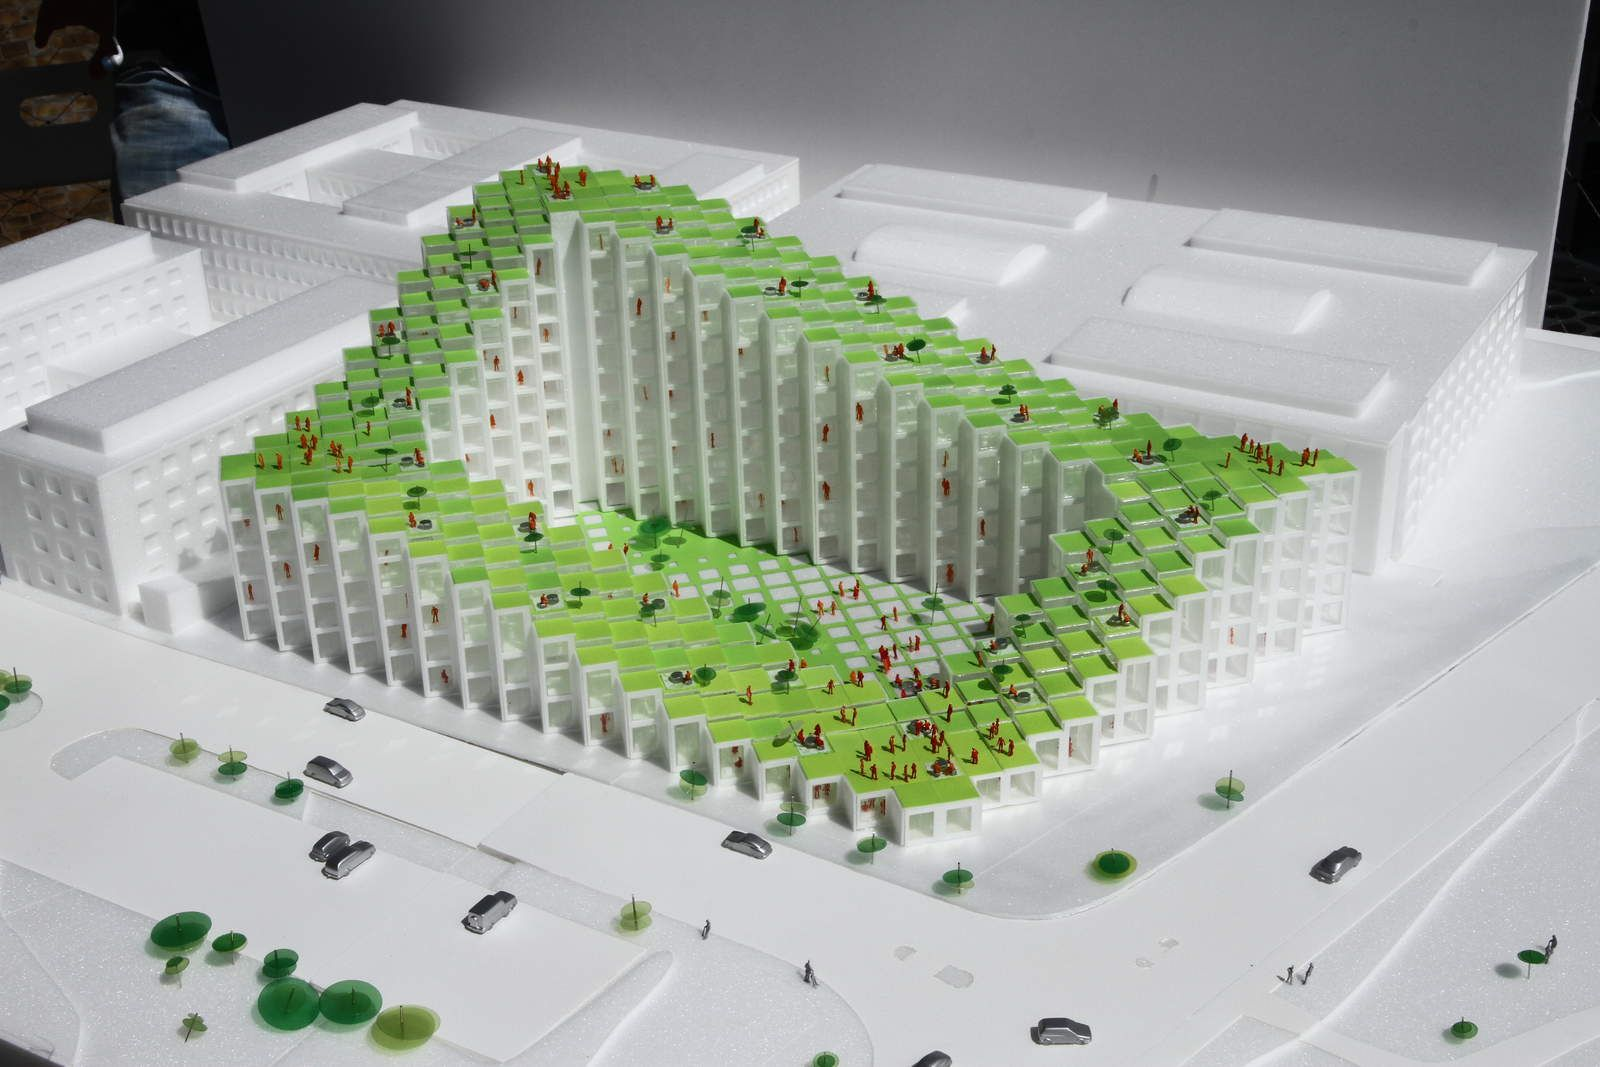 Big bjarke ingels group architecture pinterest for Big bjarke ingels group